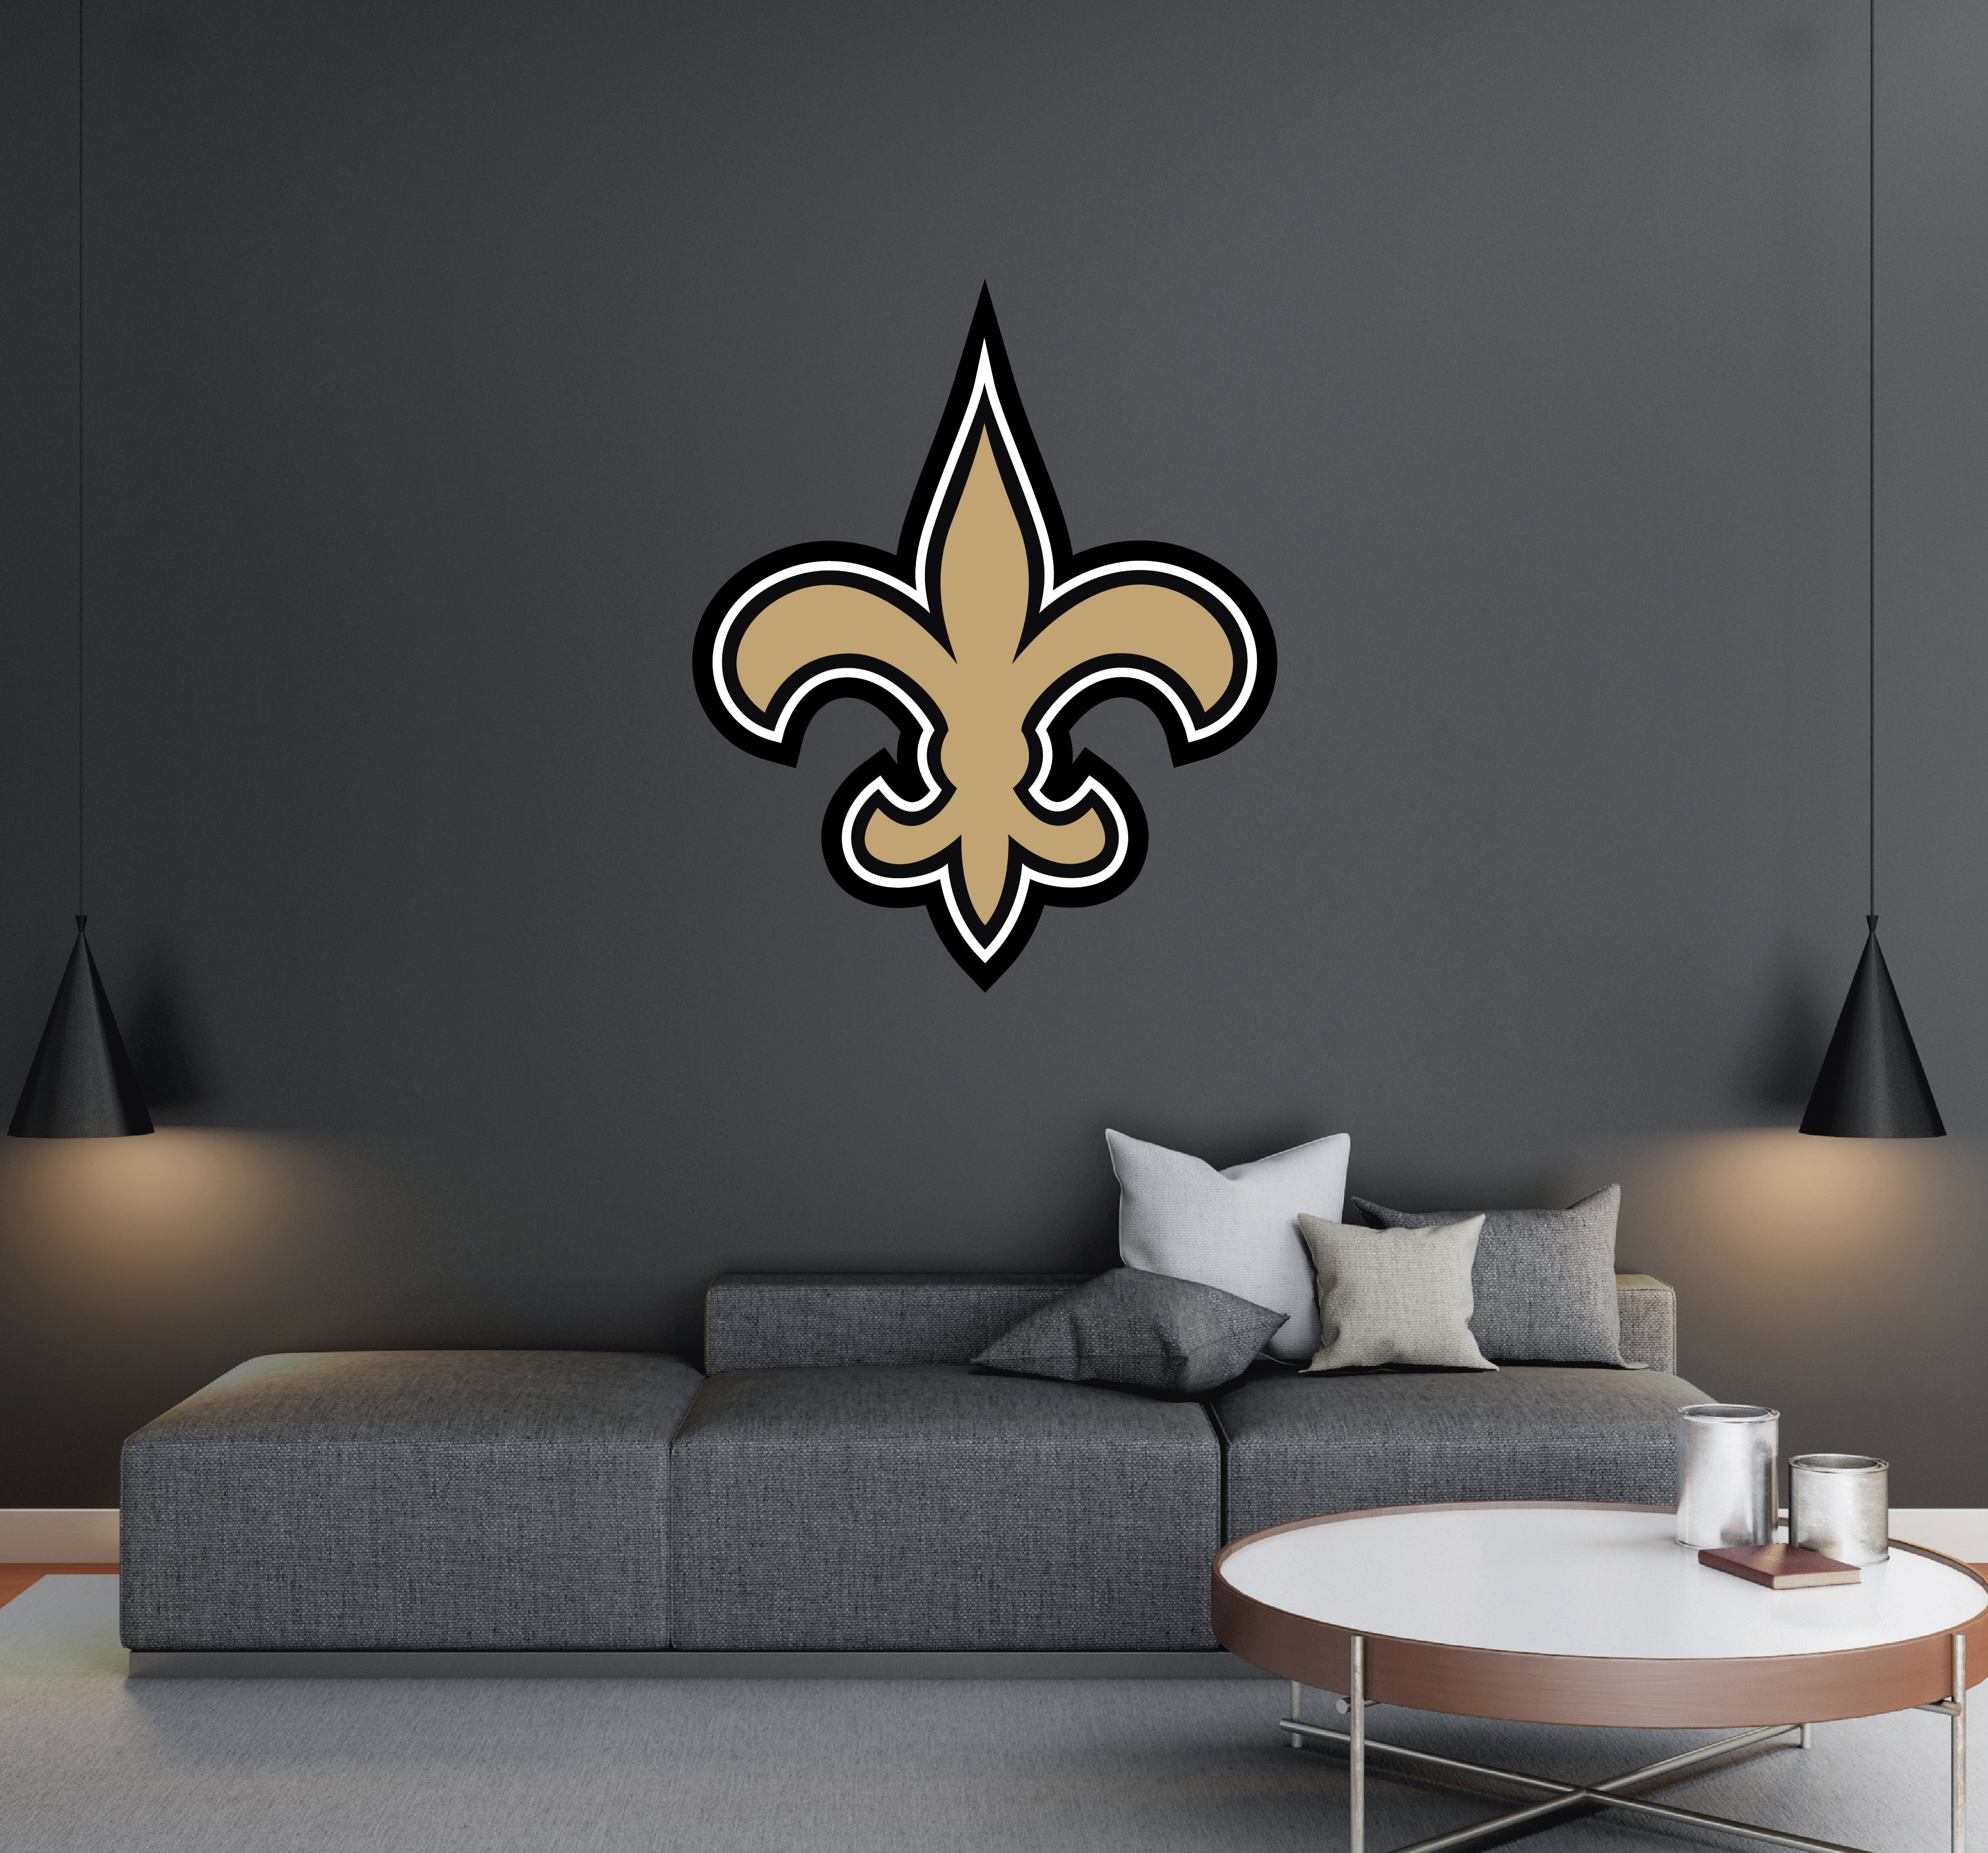 New Orleans Saints Nfl Football Team Logo Wall Decal Removable